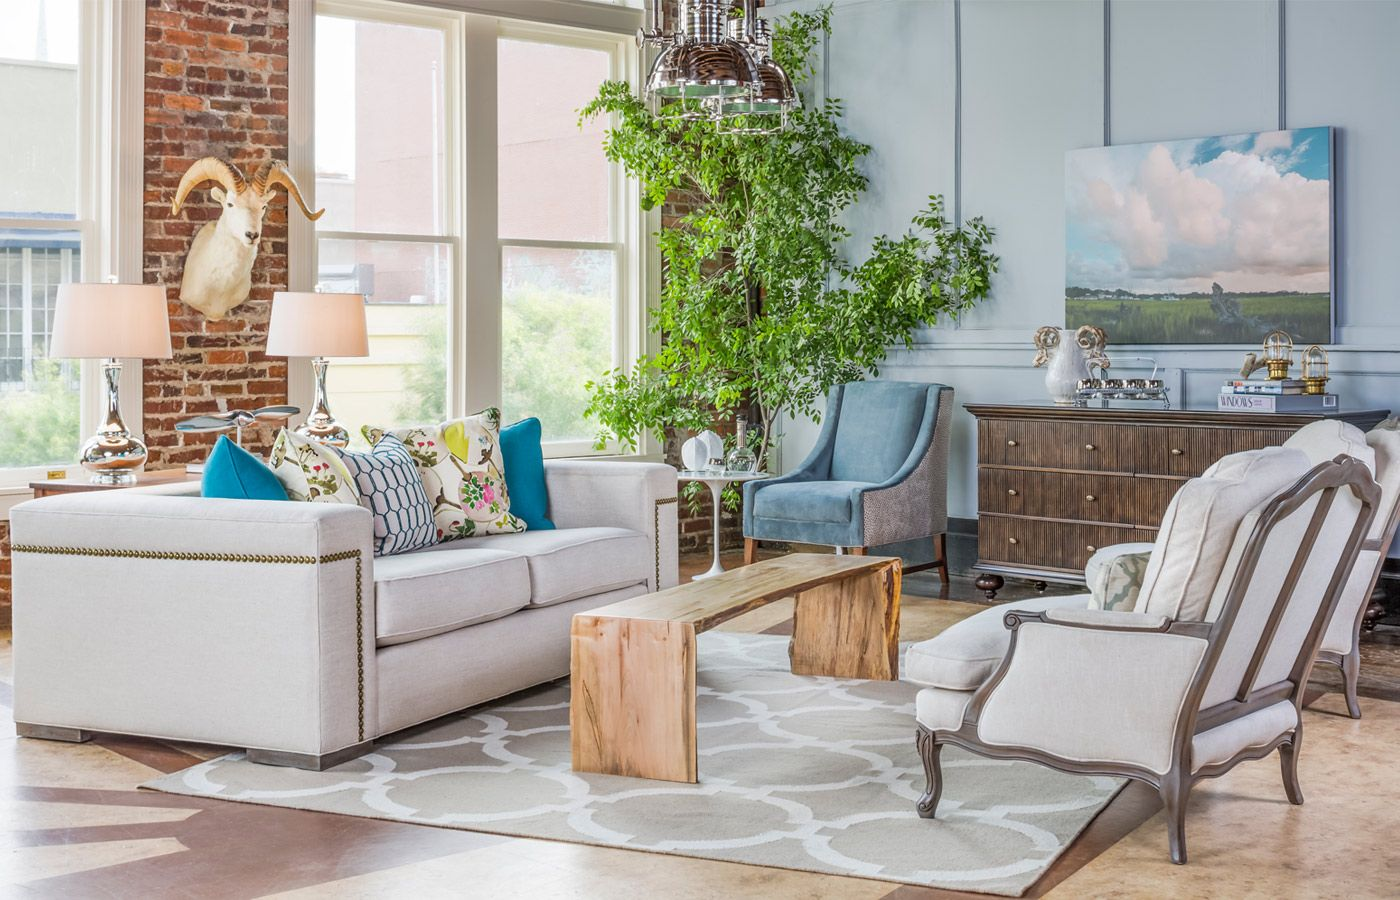 Norwalk Furniture Featured On Modern Living With Kathy Ireland® Caroline  Hippleu0027s Interview With Kathy Is Now Streaming! | Norwalk   Our Story |  Pinterest ...